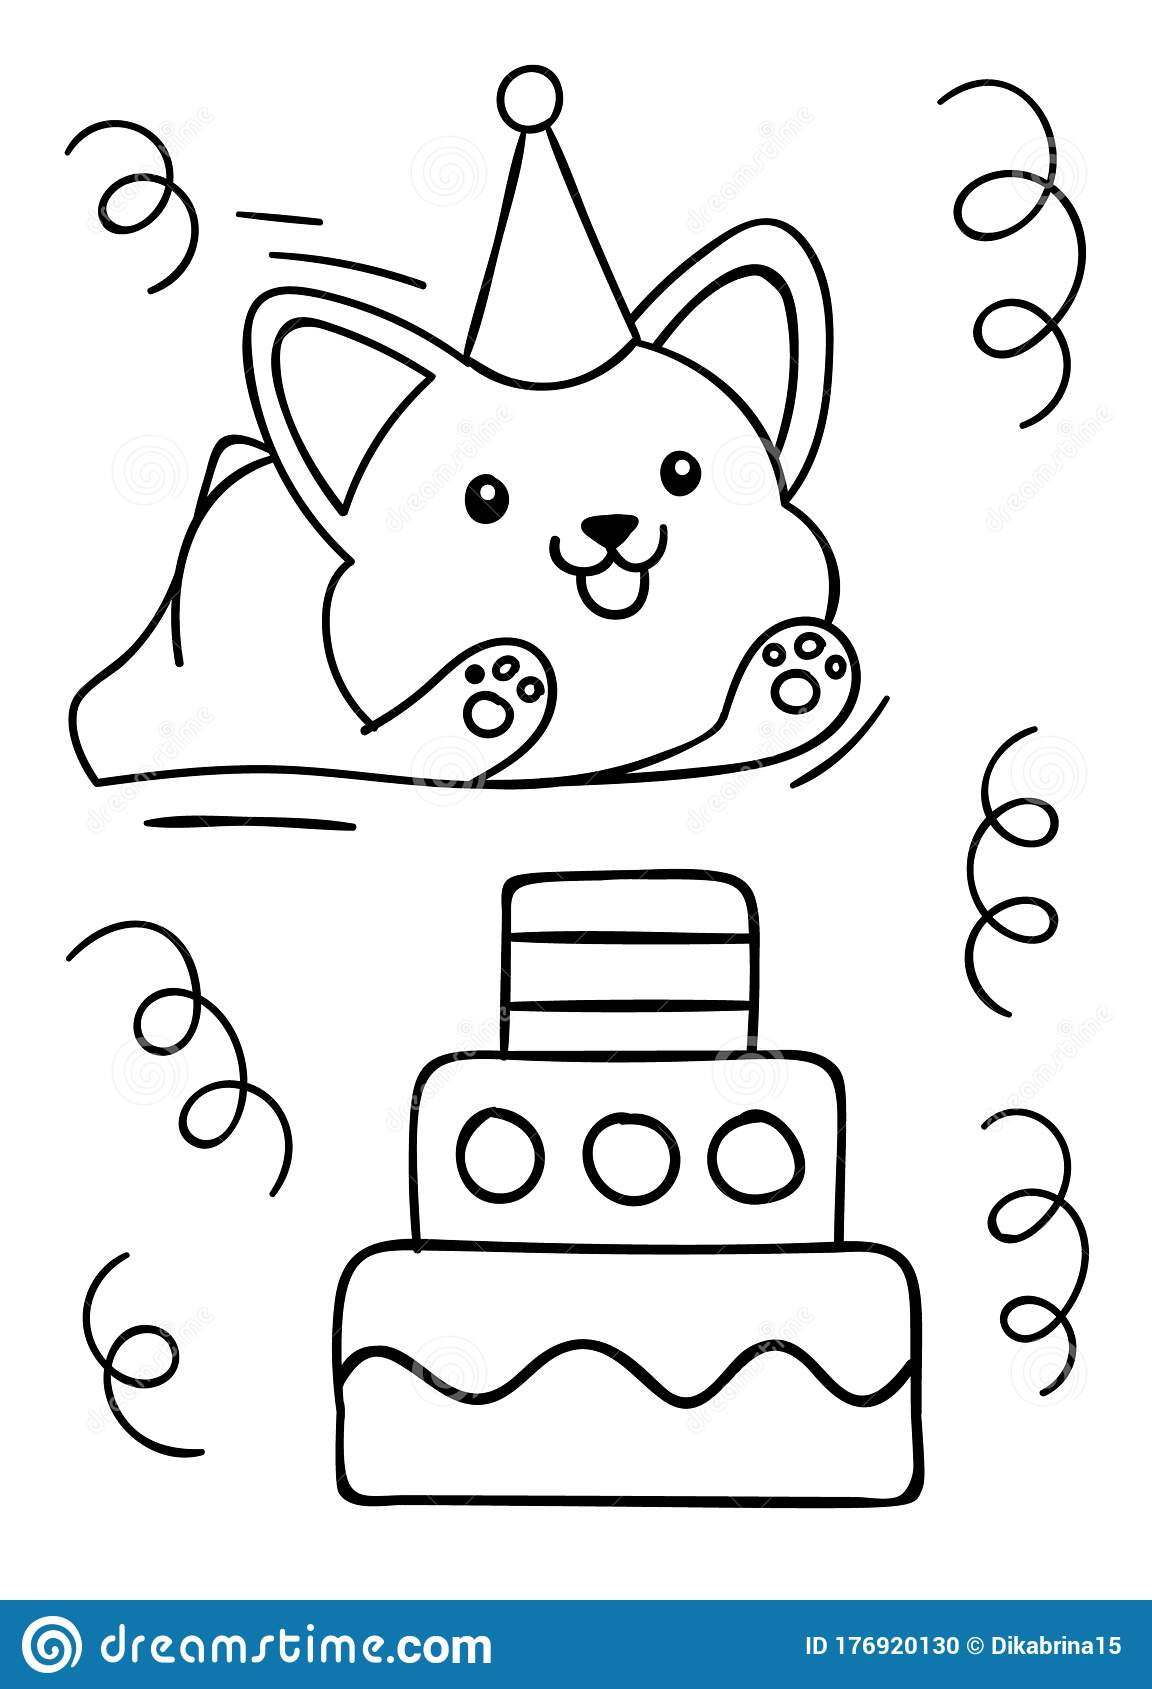 Coloring Pages, Black And White, Happy Birthday, Cute ...